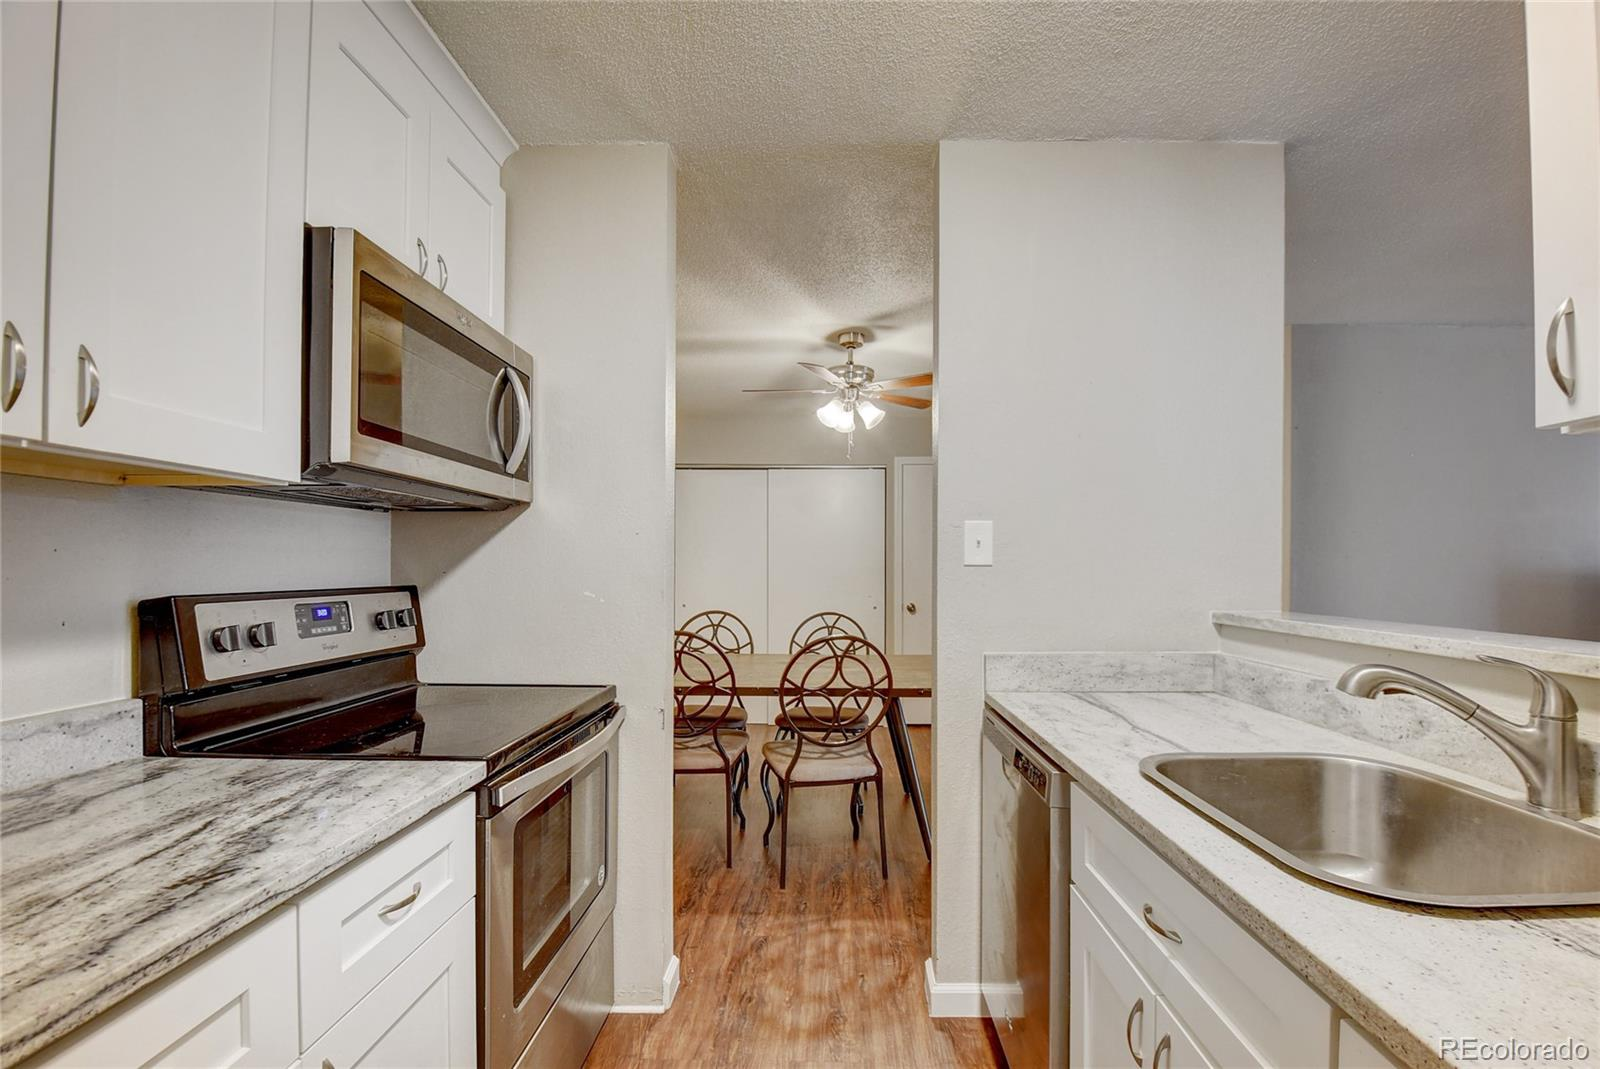 Step inside the best unit under $200,000 in Aurora with this exceptionally renovated 2 bedroom condo. The upgraded kitchen boasts granite countertops, stainless steel appliances, and upgraded solid wood, soft close cabinets. With hardwood floors throughout, upgraded bathrooms, and newer A/C units, this premium unit is truly turn-key. The balcony is closed in with sound proof plexiglass allowing a wonderful view of the grounds without any concerns about noise. The HOA is full service covering heat, sewer, water, and trash. Located near I-225 and Illif in Cherry Creek Schools, this home has easy access to Downtown, DTC, Anschutz, Buckley AFB, and DIA. One reserved spot is located directly across from the stairs up to the unit for easy access. Don't miss out on this beautifully unique opportunity. Ask your agent about the $17,500 grant program.